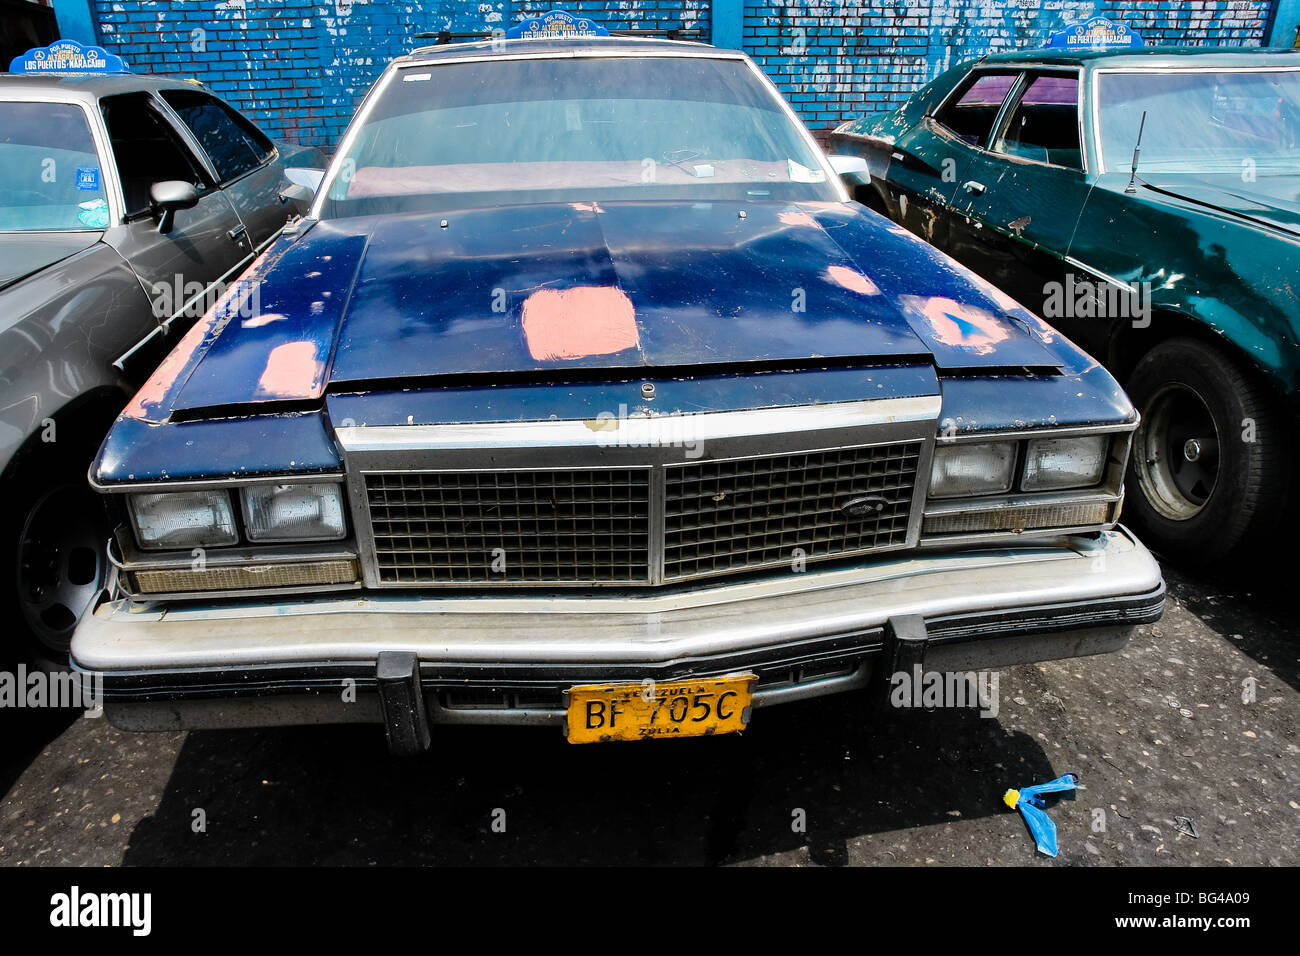 An American classic cars from 1970s, used as a shared taxi, parked ...